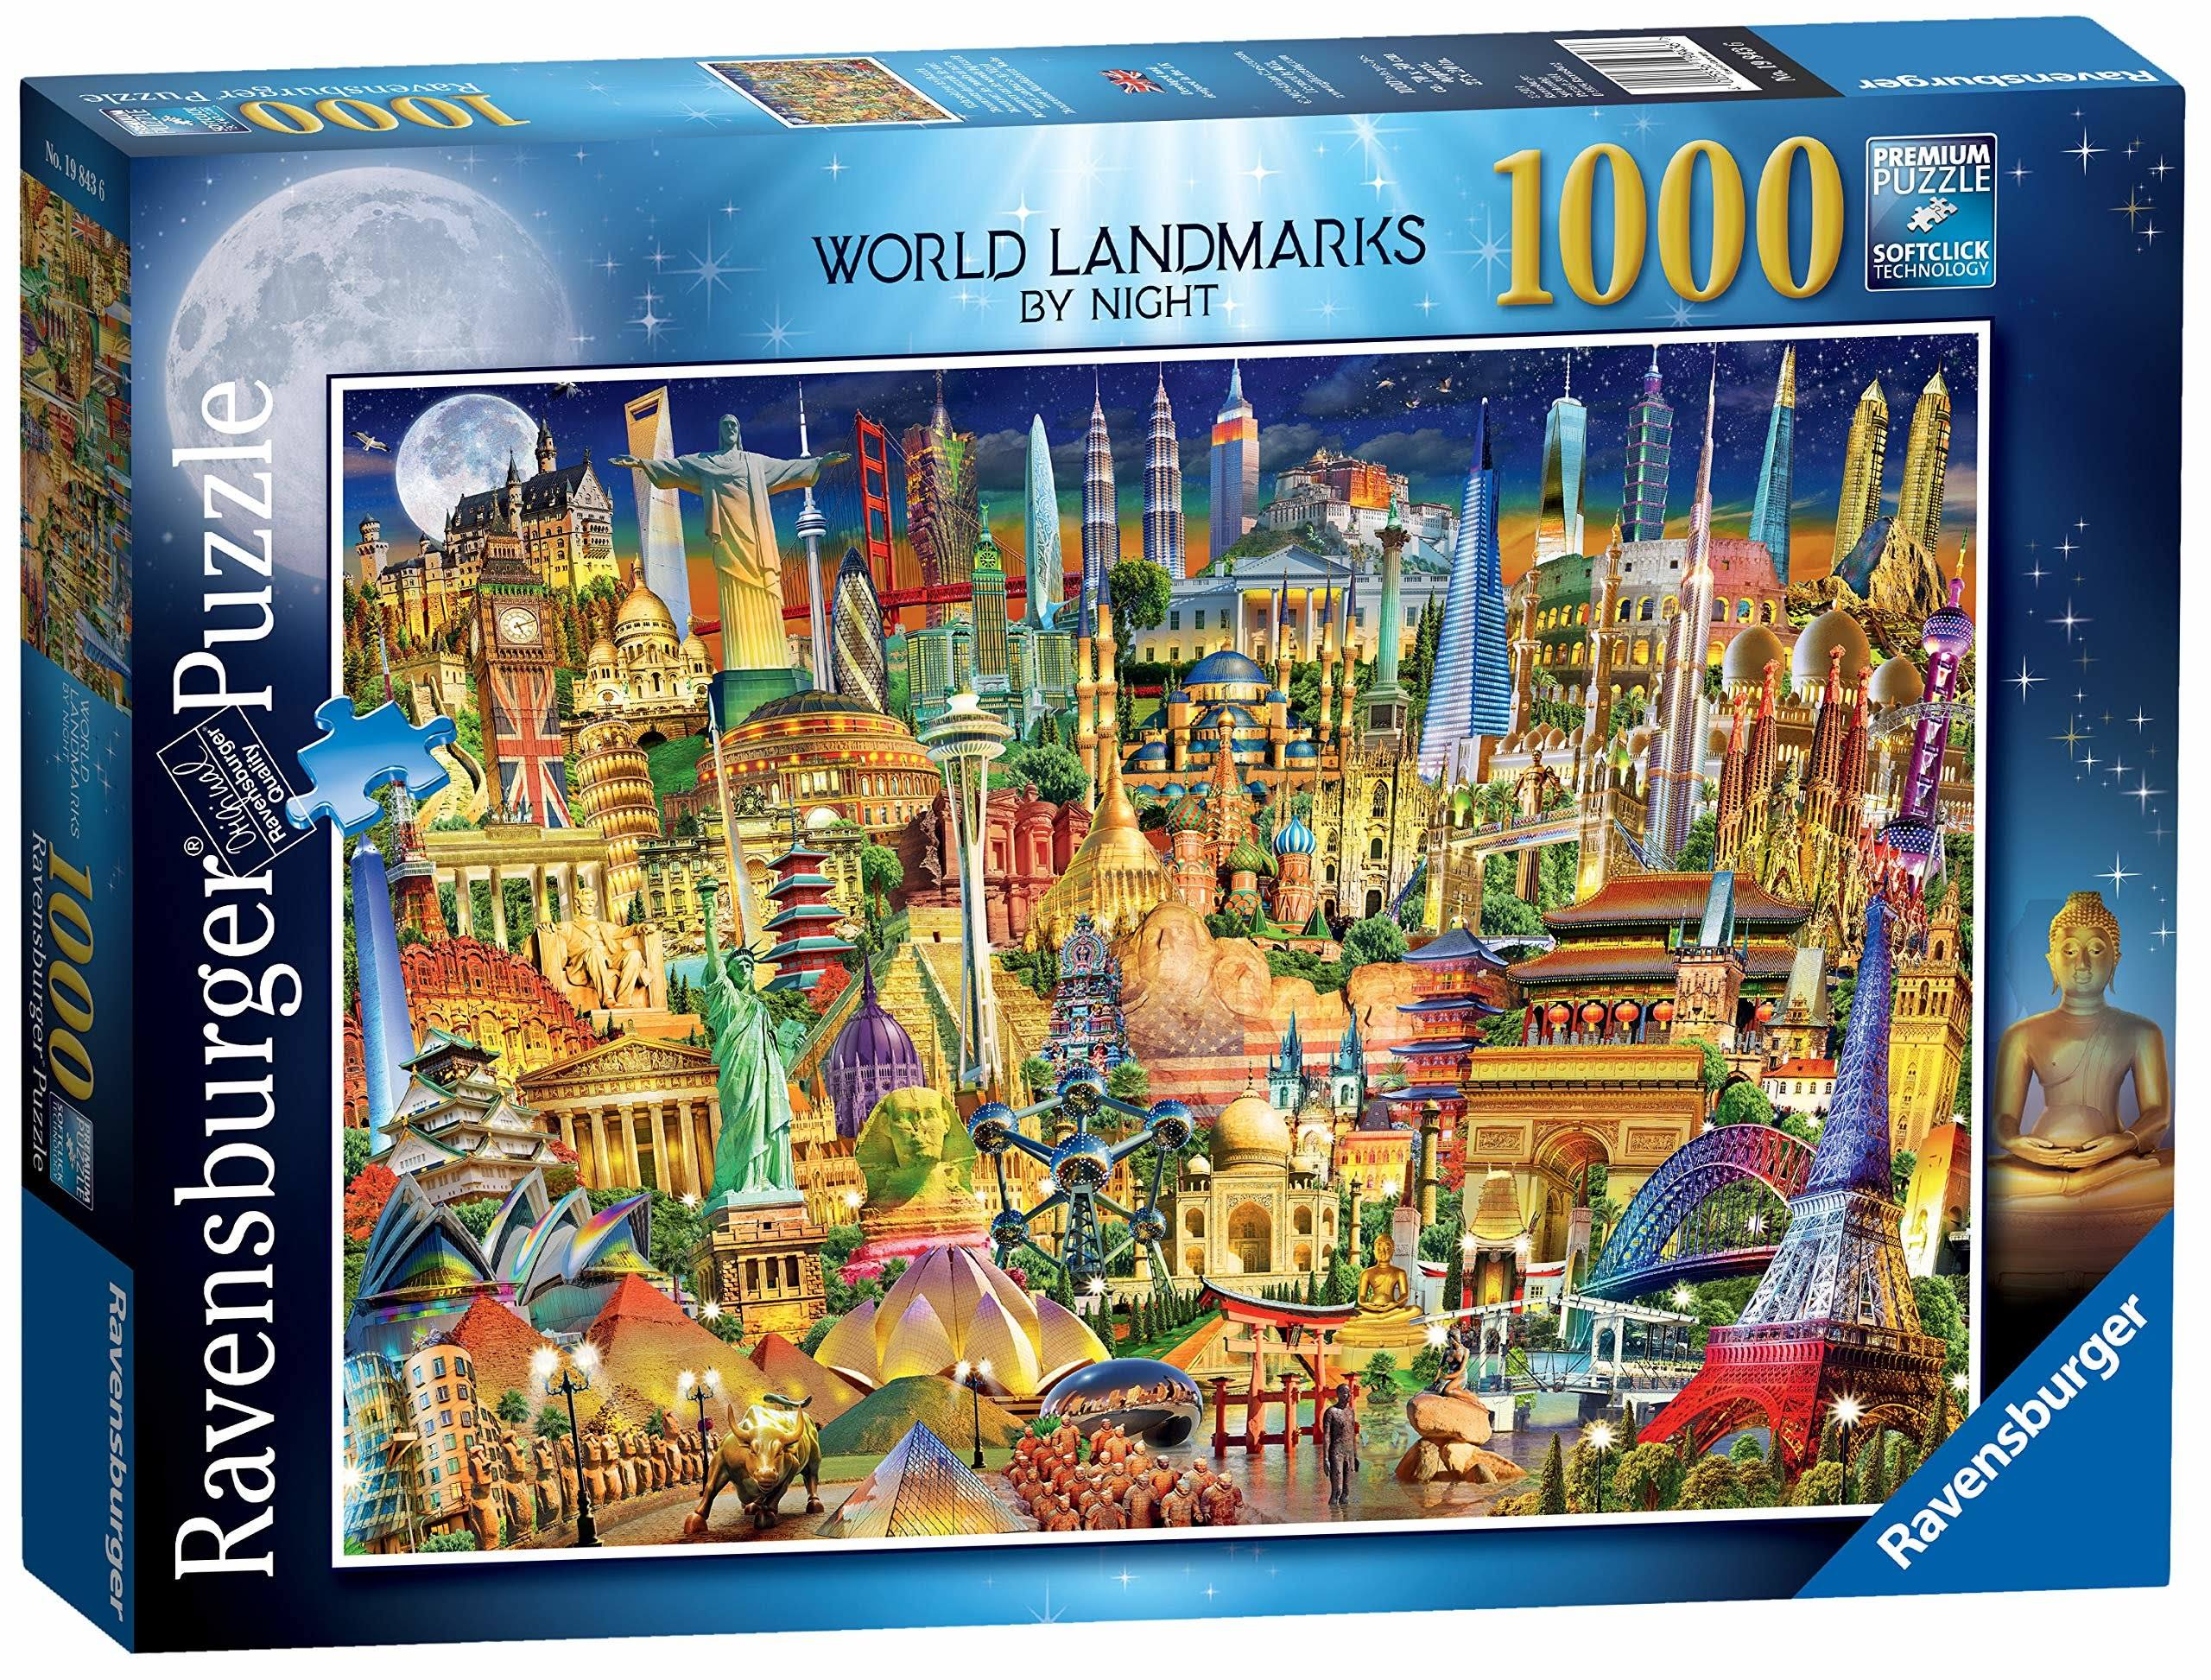 Ravensburger Jigsaw Puzzle - World Landmarks by Night, 1000pcs